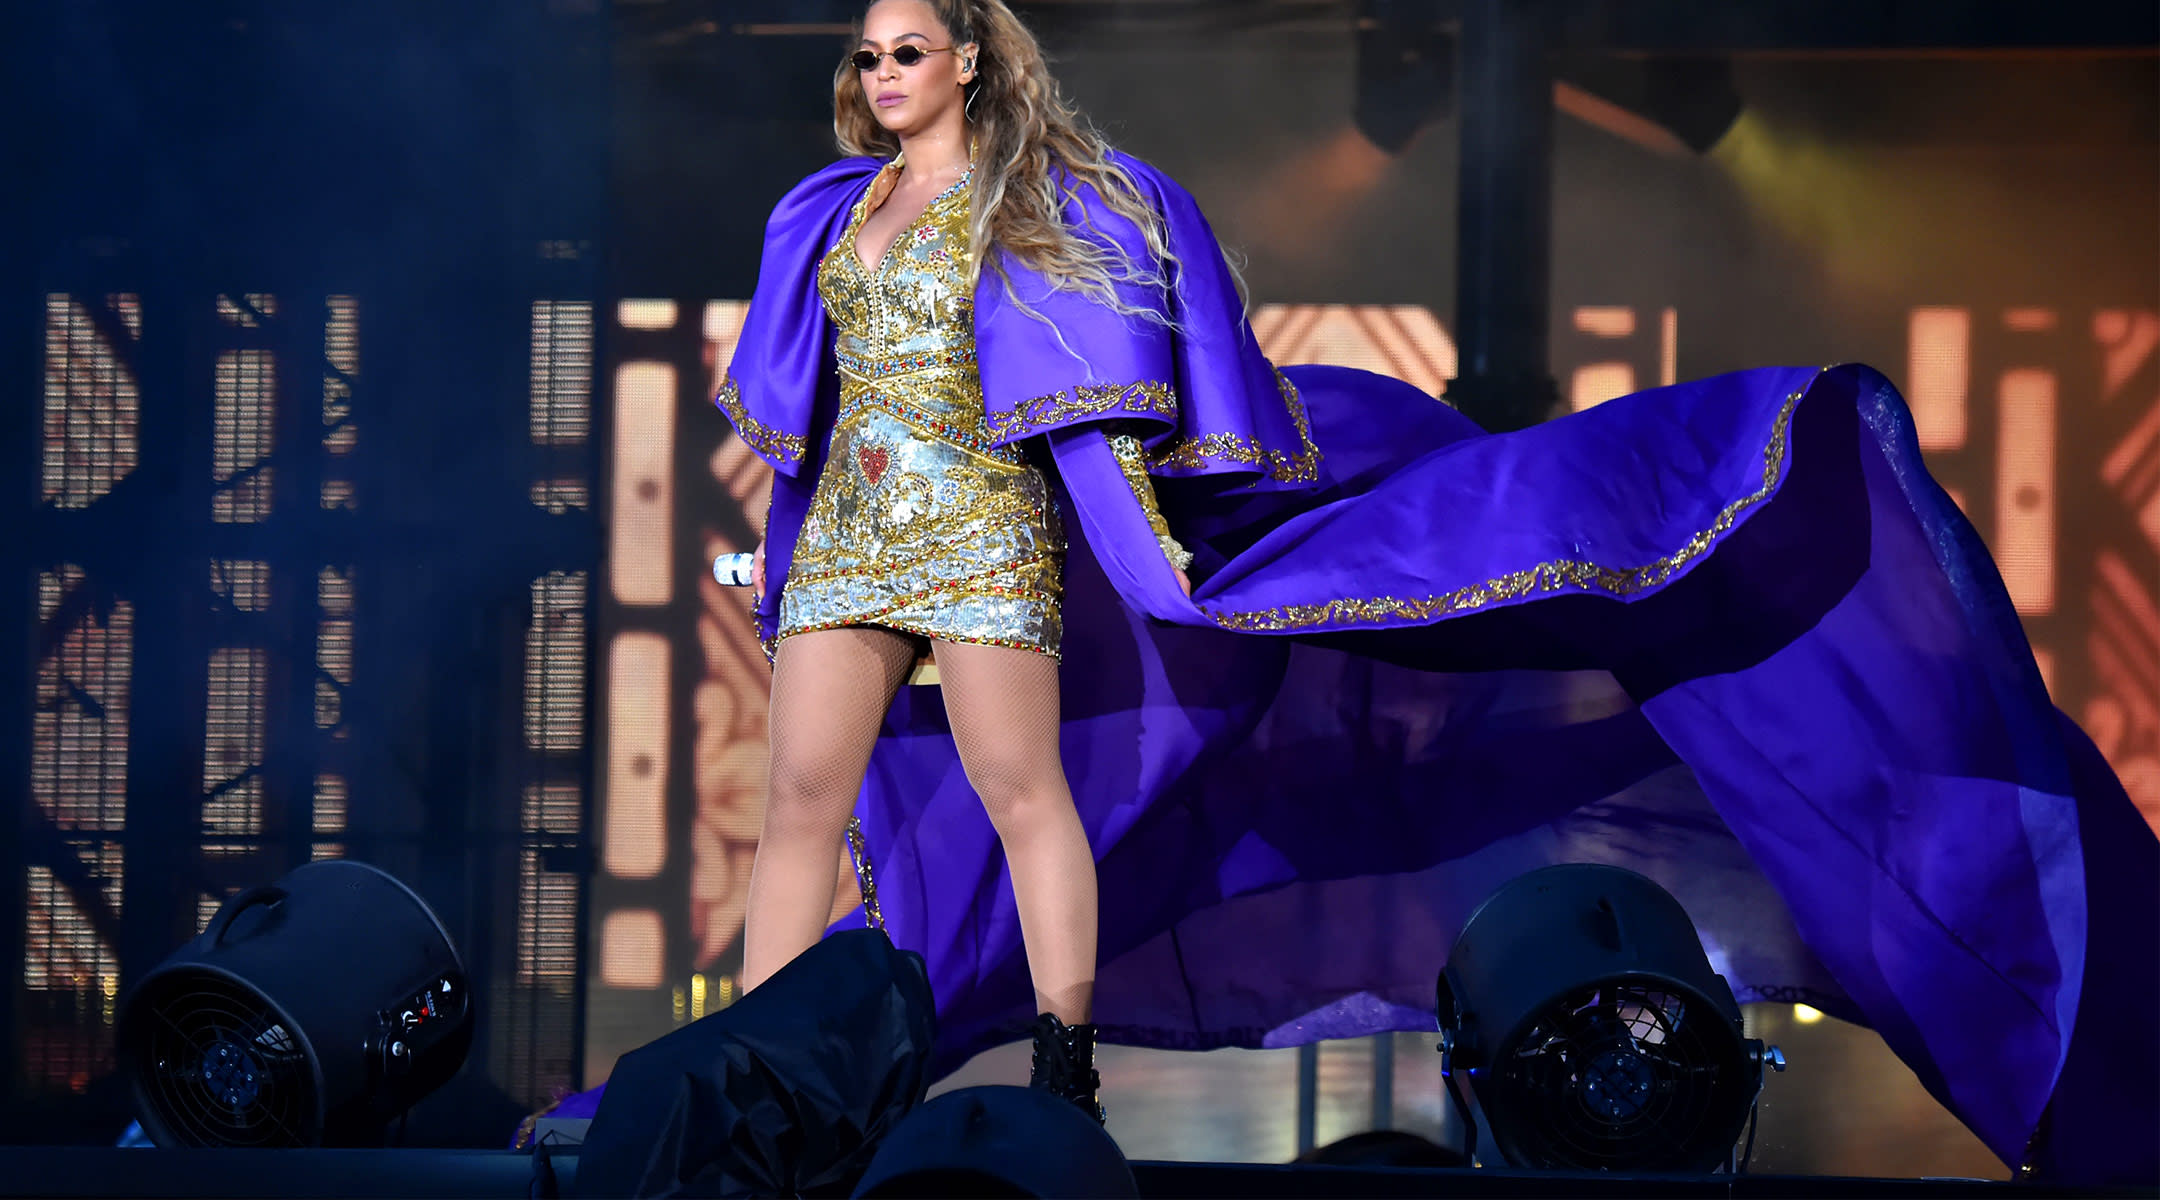 beyonce performing in costume on stage